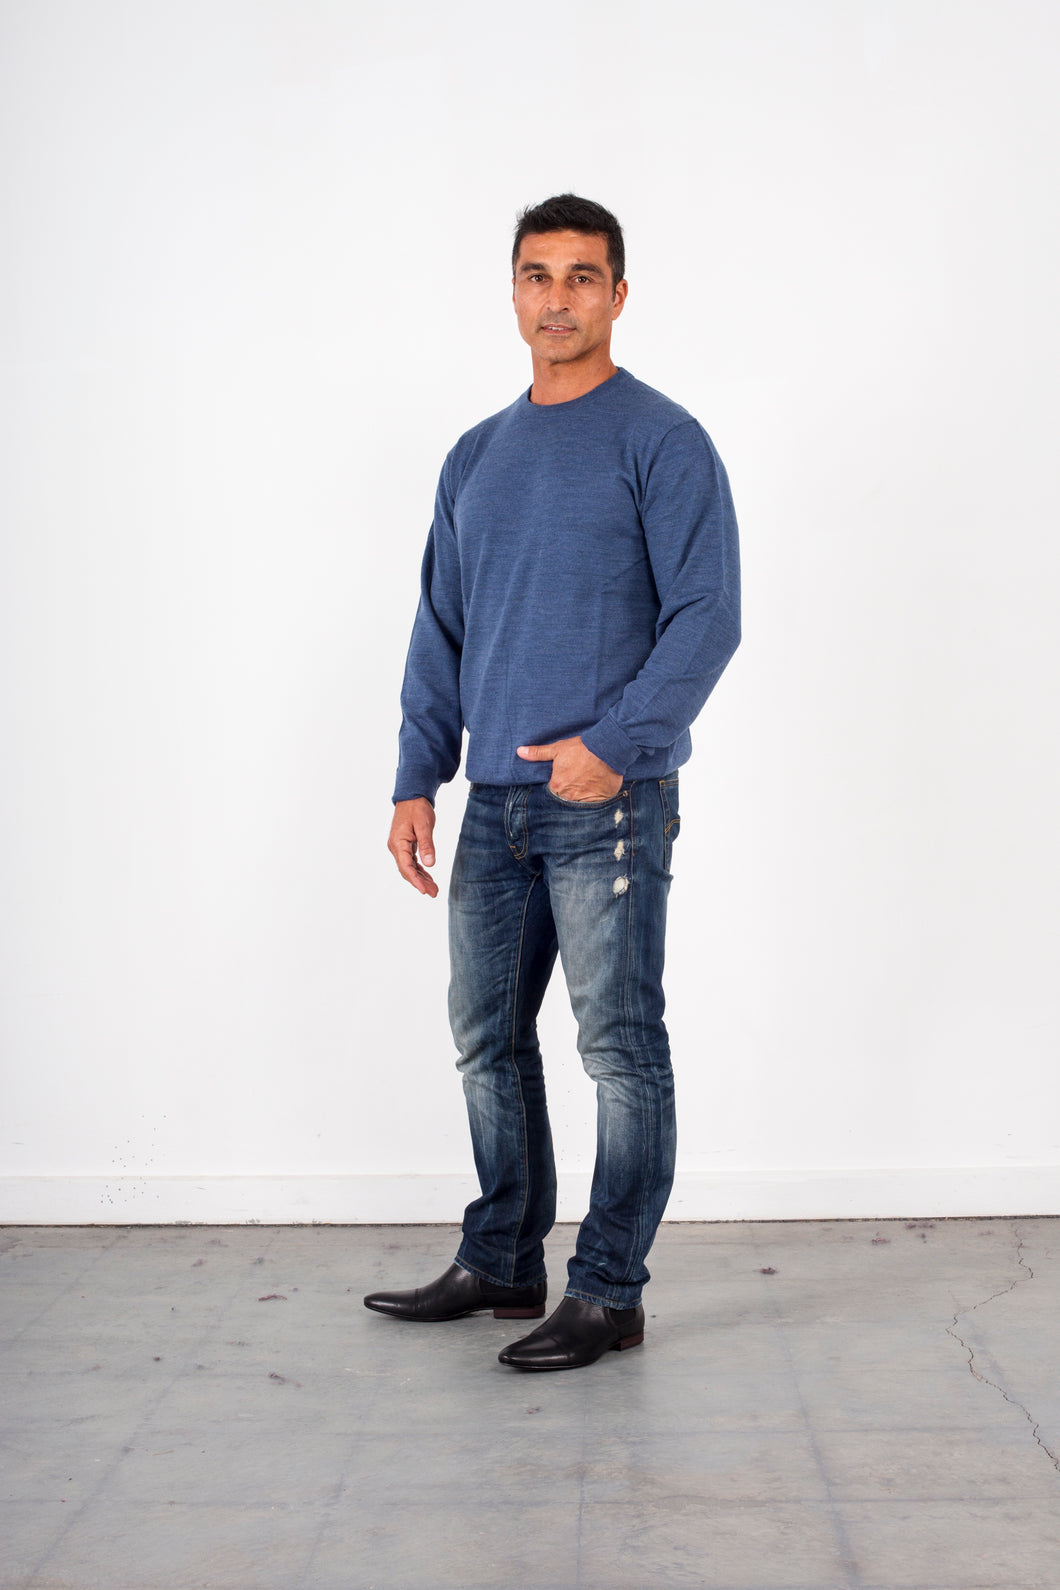 FL840 – SMALL CREW NECK WITH BASQUE